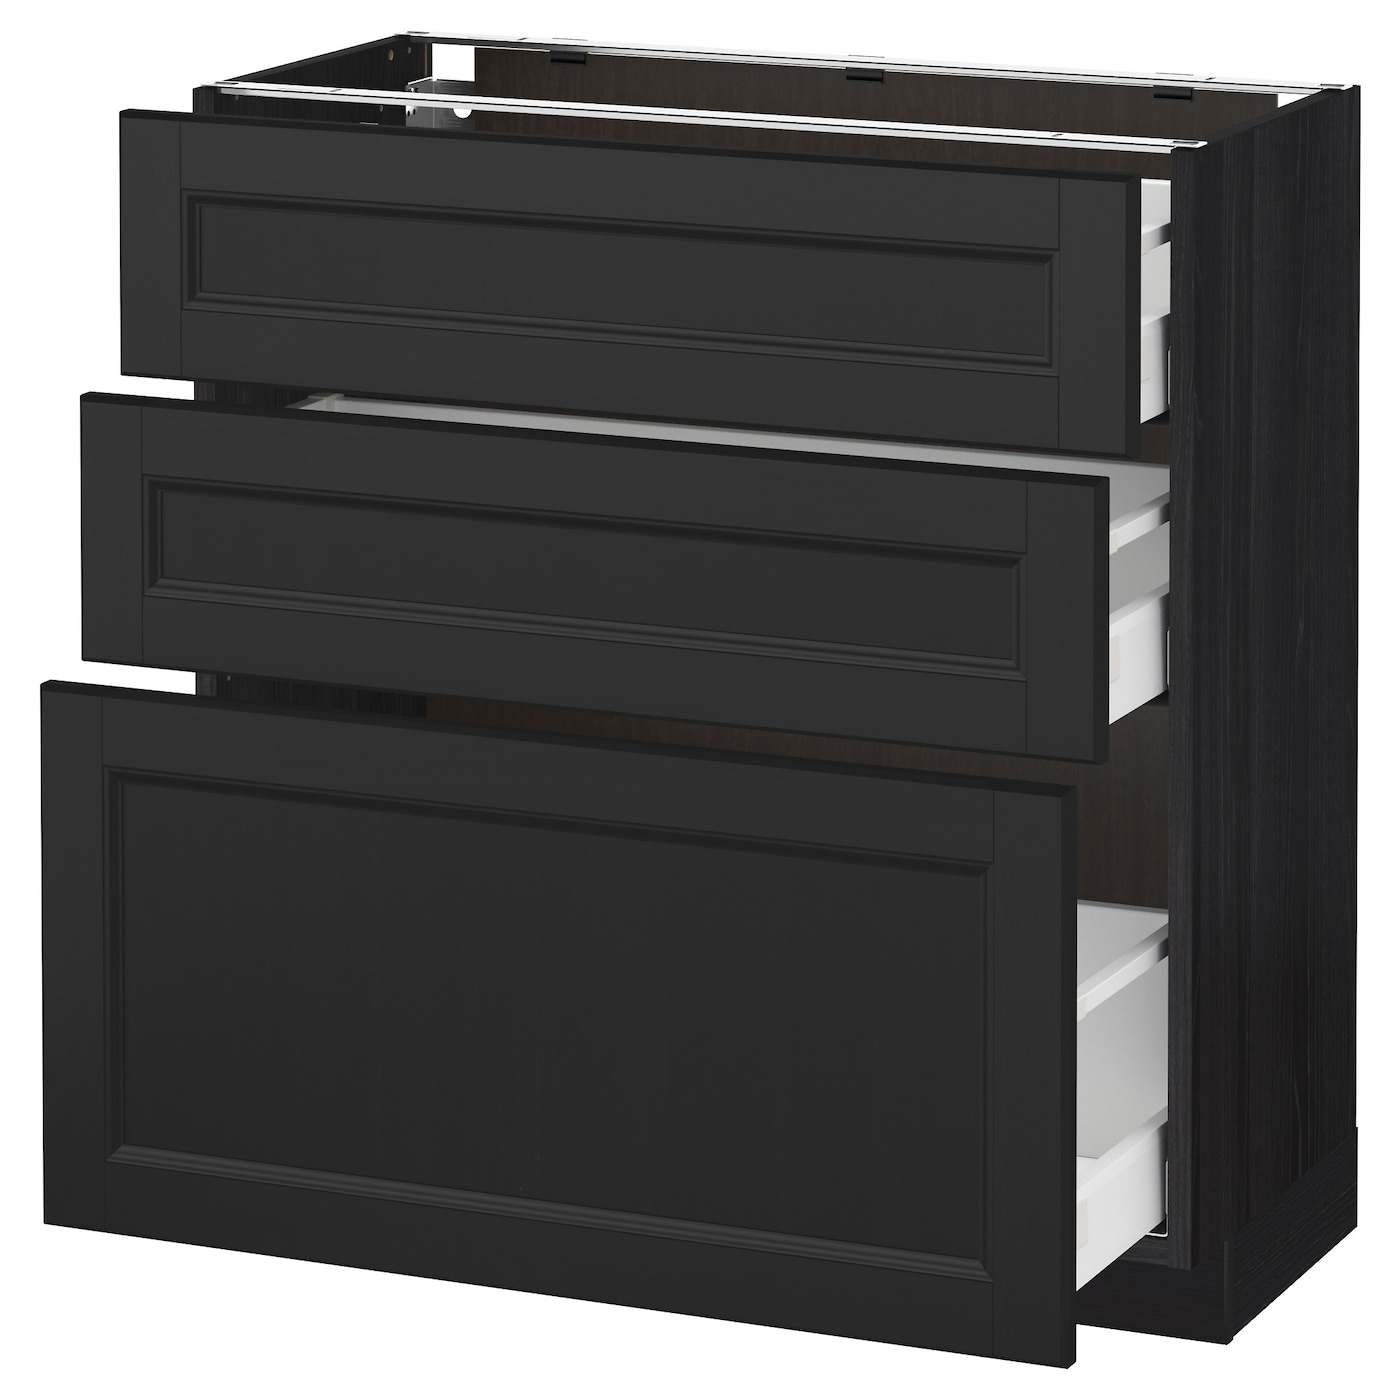 metod maximera base cabinet with 3 drawers black laxarby black brown 80x37 cm ikea. Black Bedroom Furniture Sets. Home Design Ideas